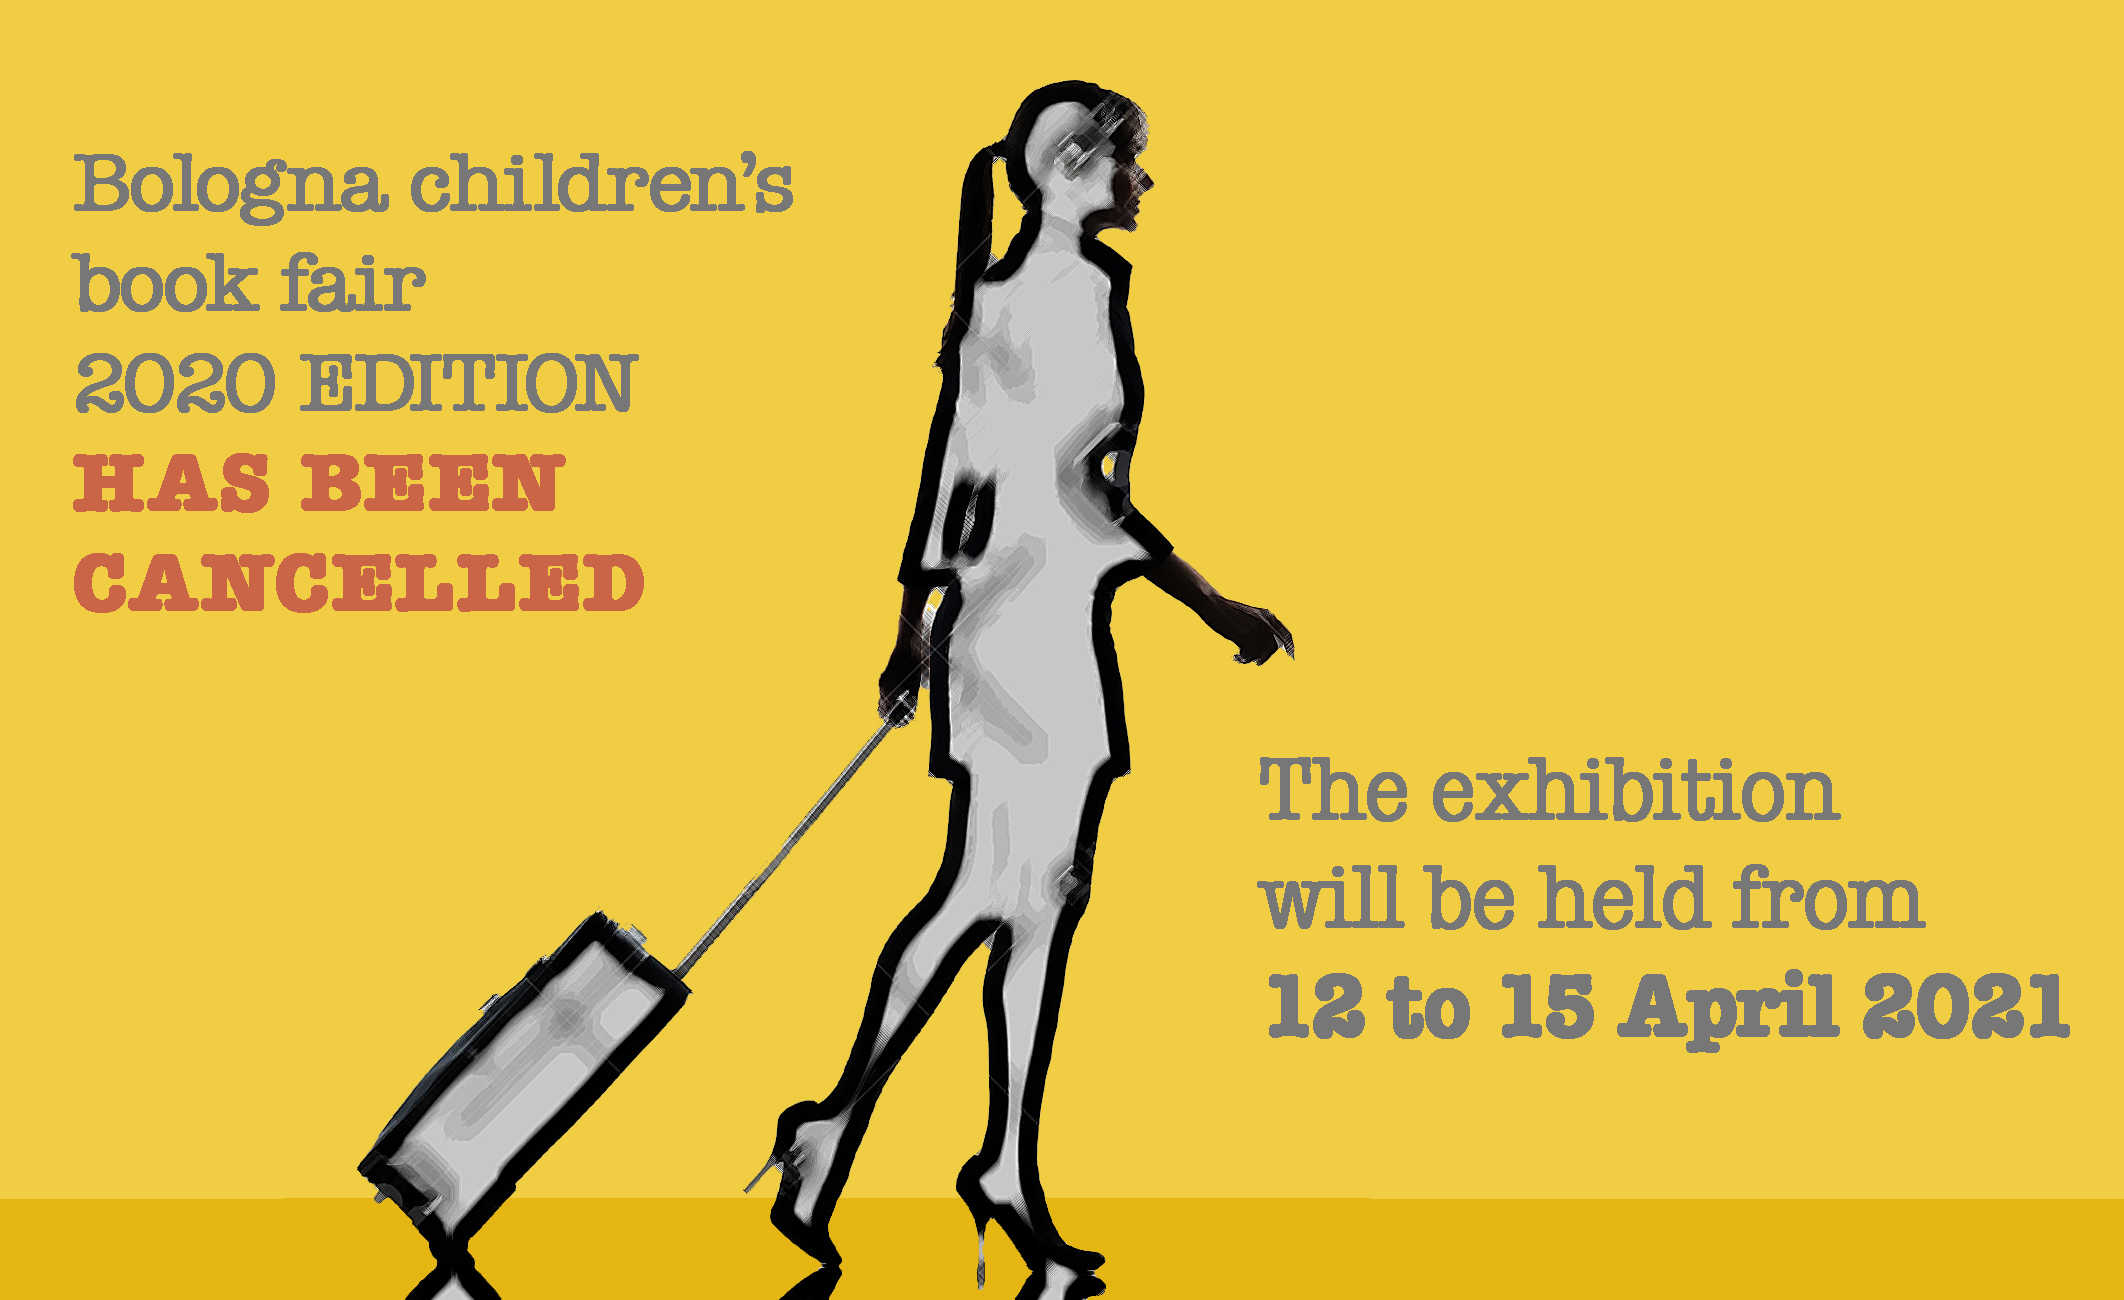 Bologna Childrens Bookfair 2020 edition has been cancelled